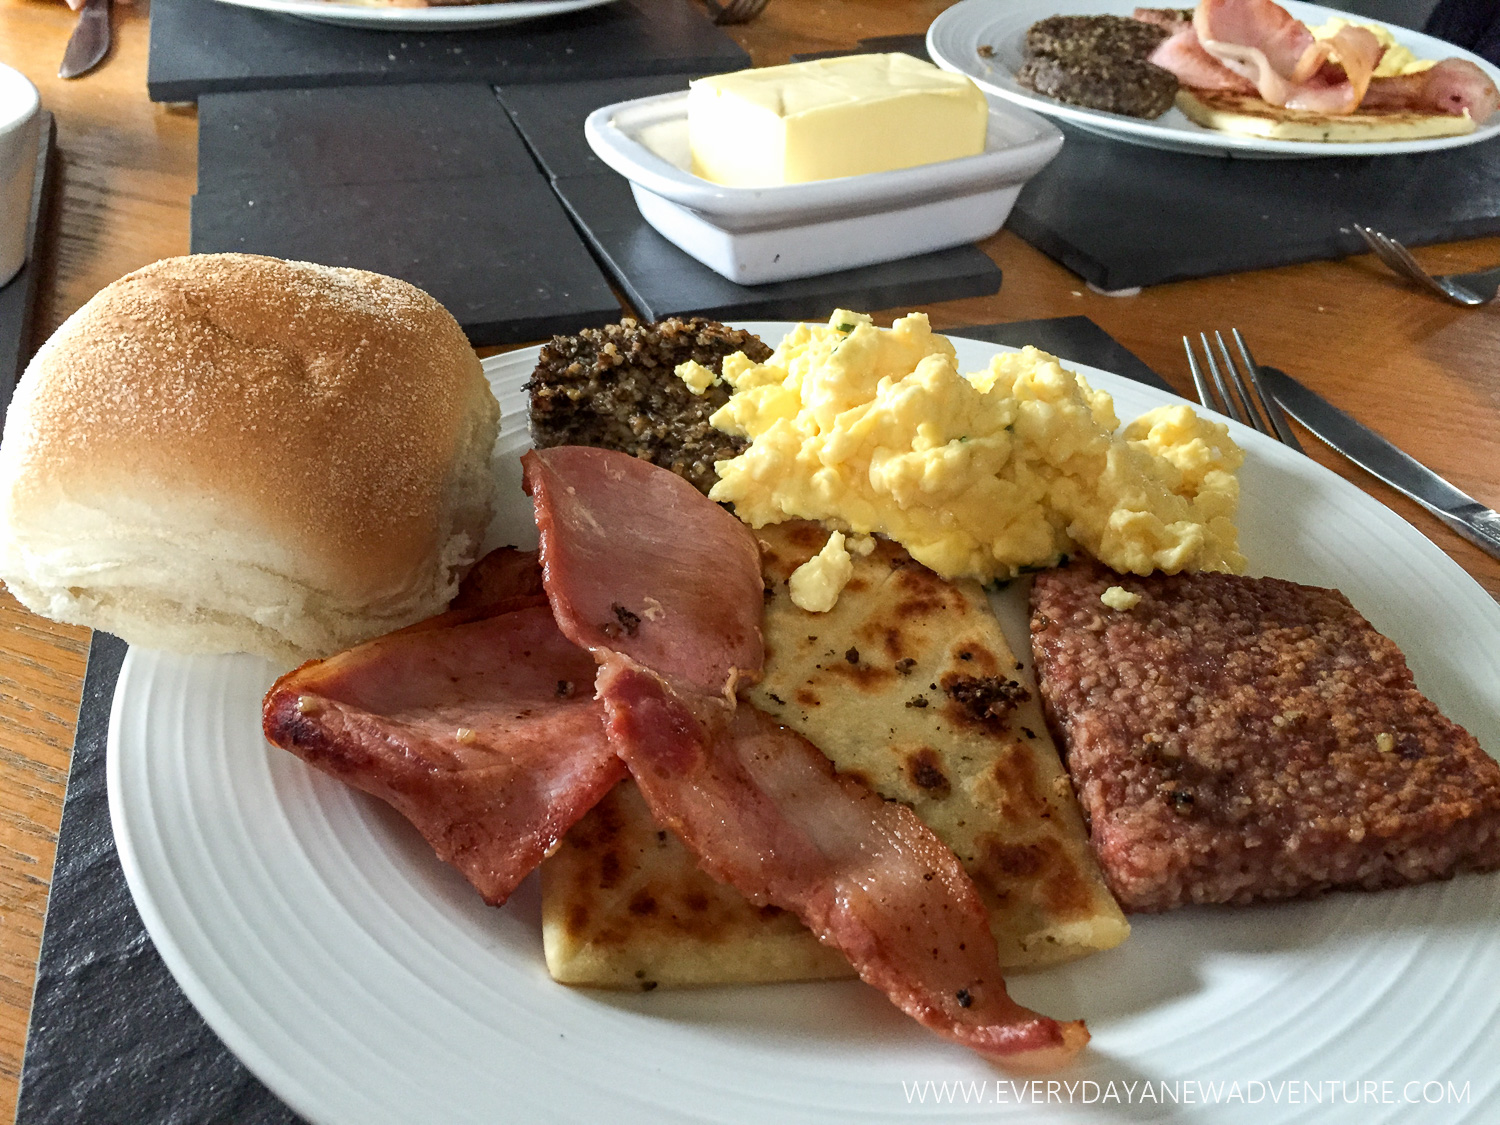 Traditional Scottish breakfast courtesy of our friend, Chic, at his house in Stirling! Look at that perfect haggis and lorne sausage!